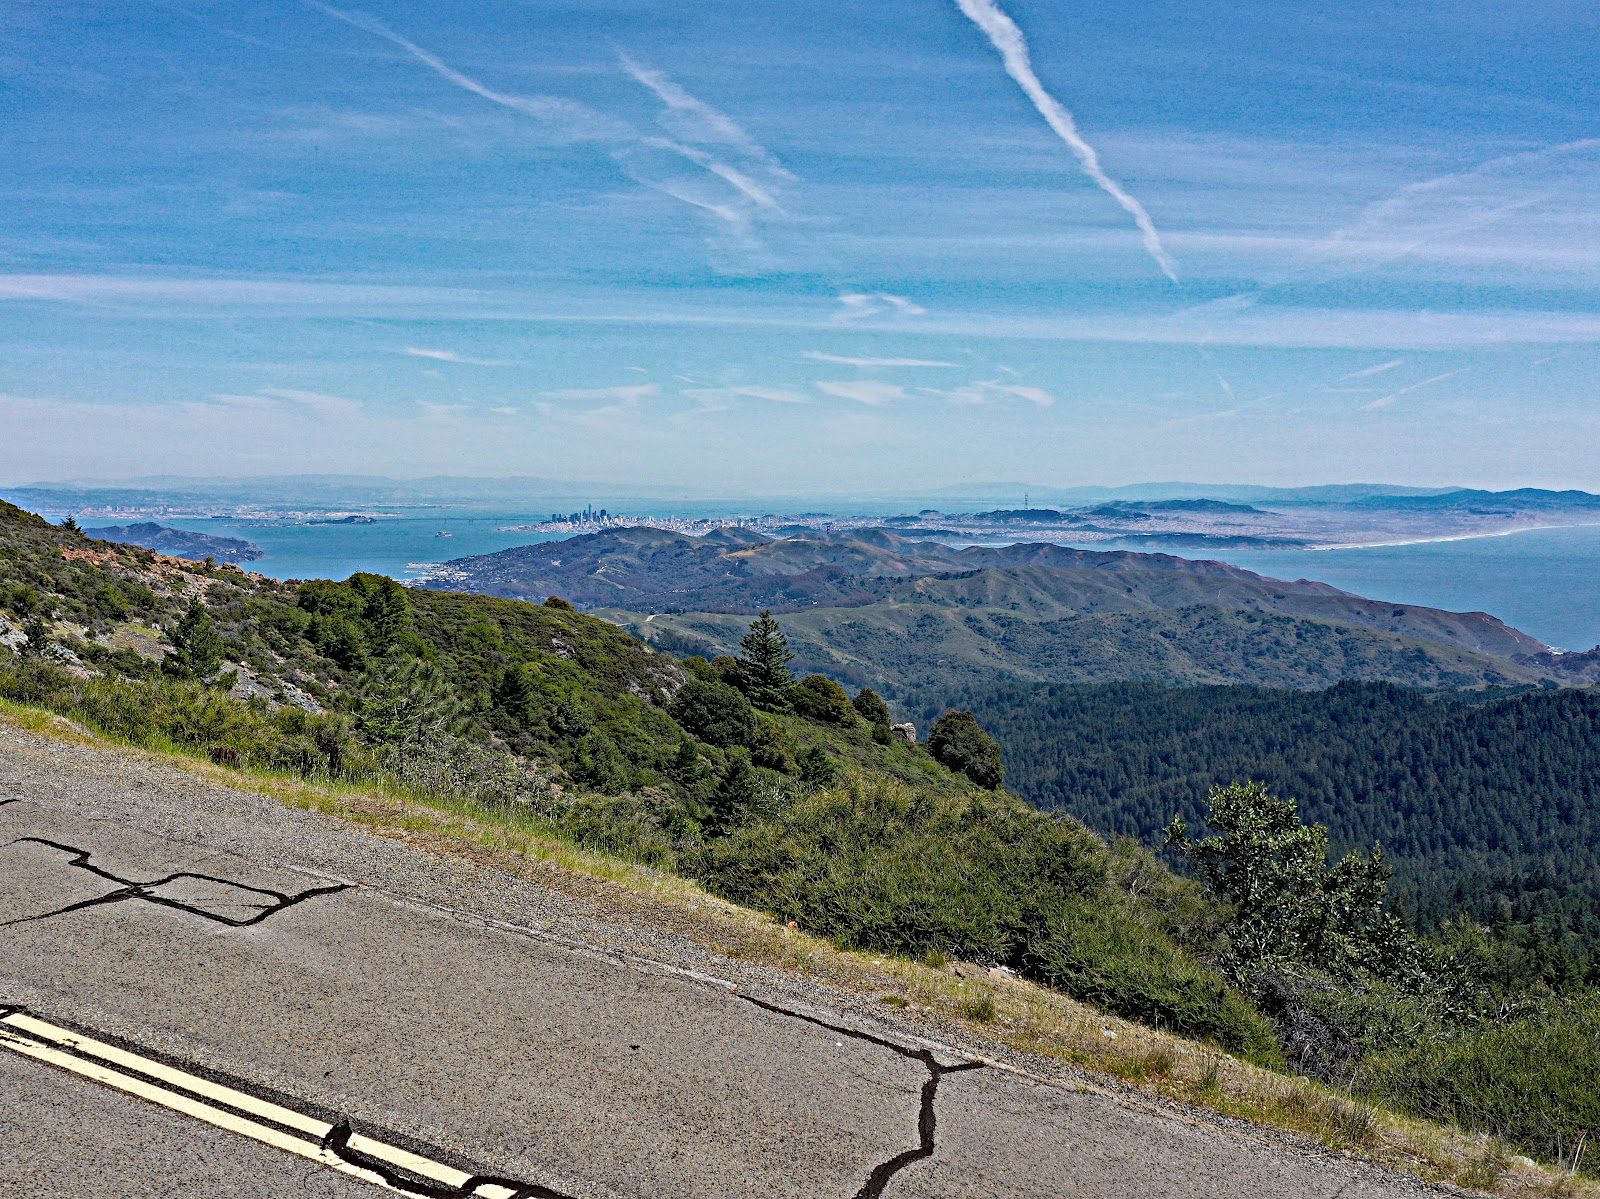 cycling Mt. Tamalpais from Fairfax Bolinas Road - view of San Francisco and the San Francisco Bay from the top.